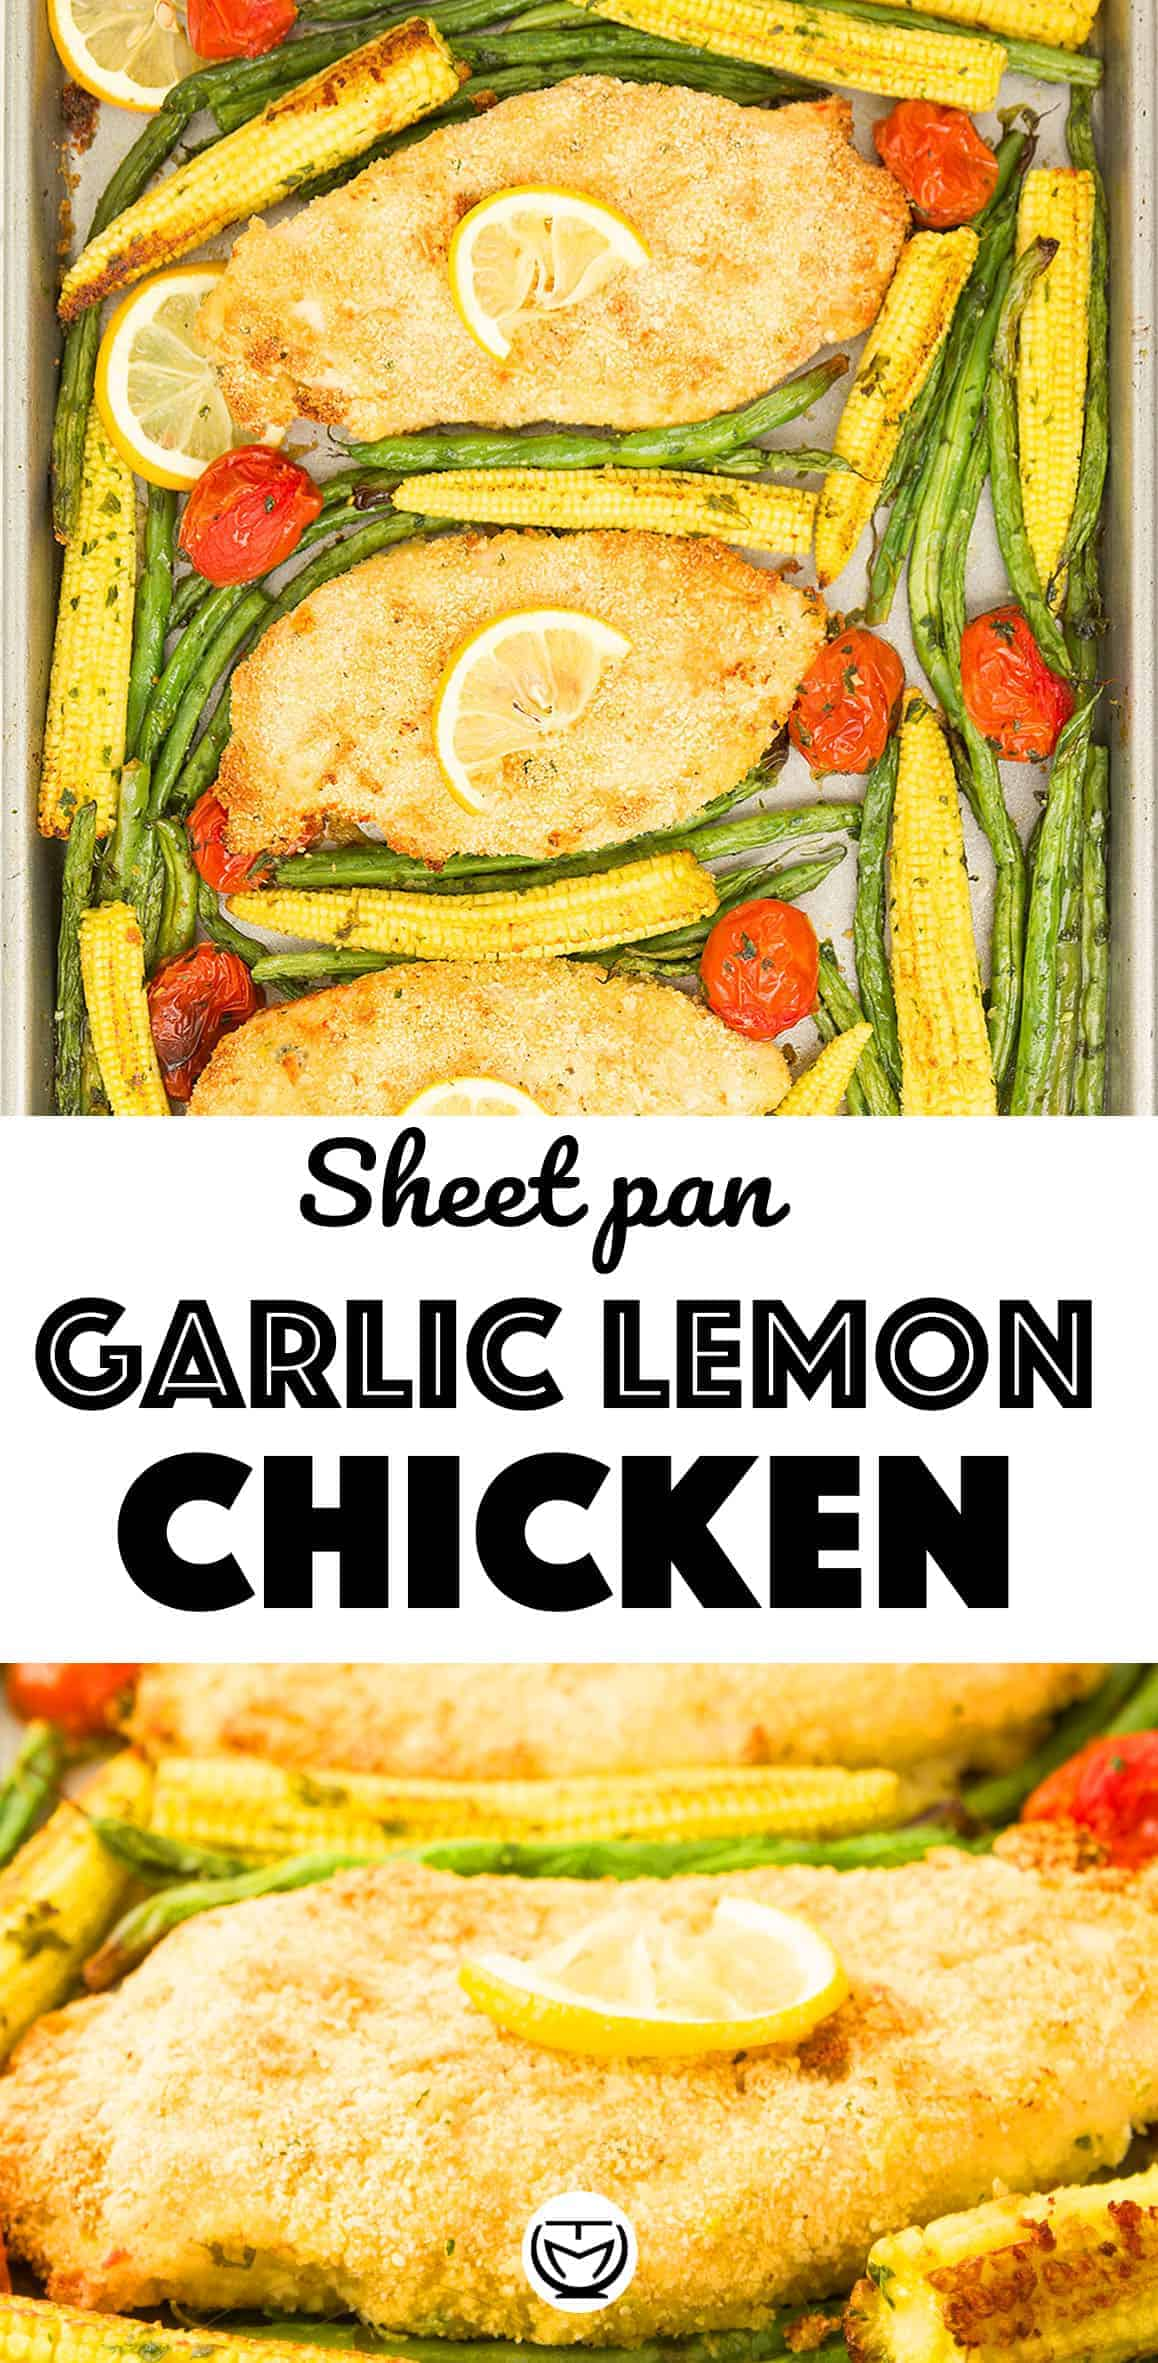 This delicious and crunchy sheet pan garlic chicken with lemon and veggies makes a perfect and healthy dinner and a great meal prep!